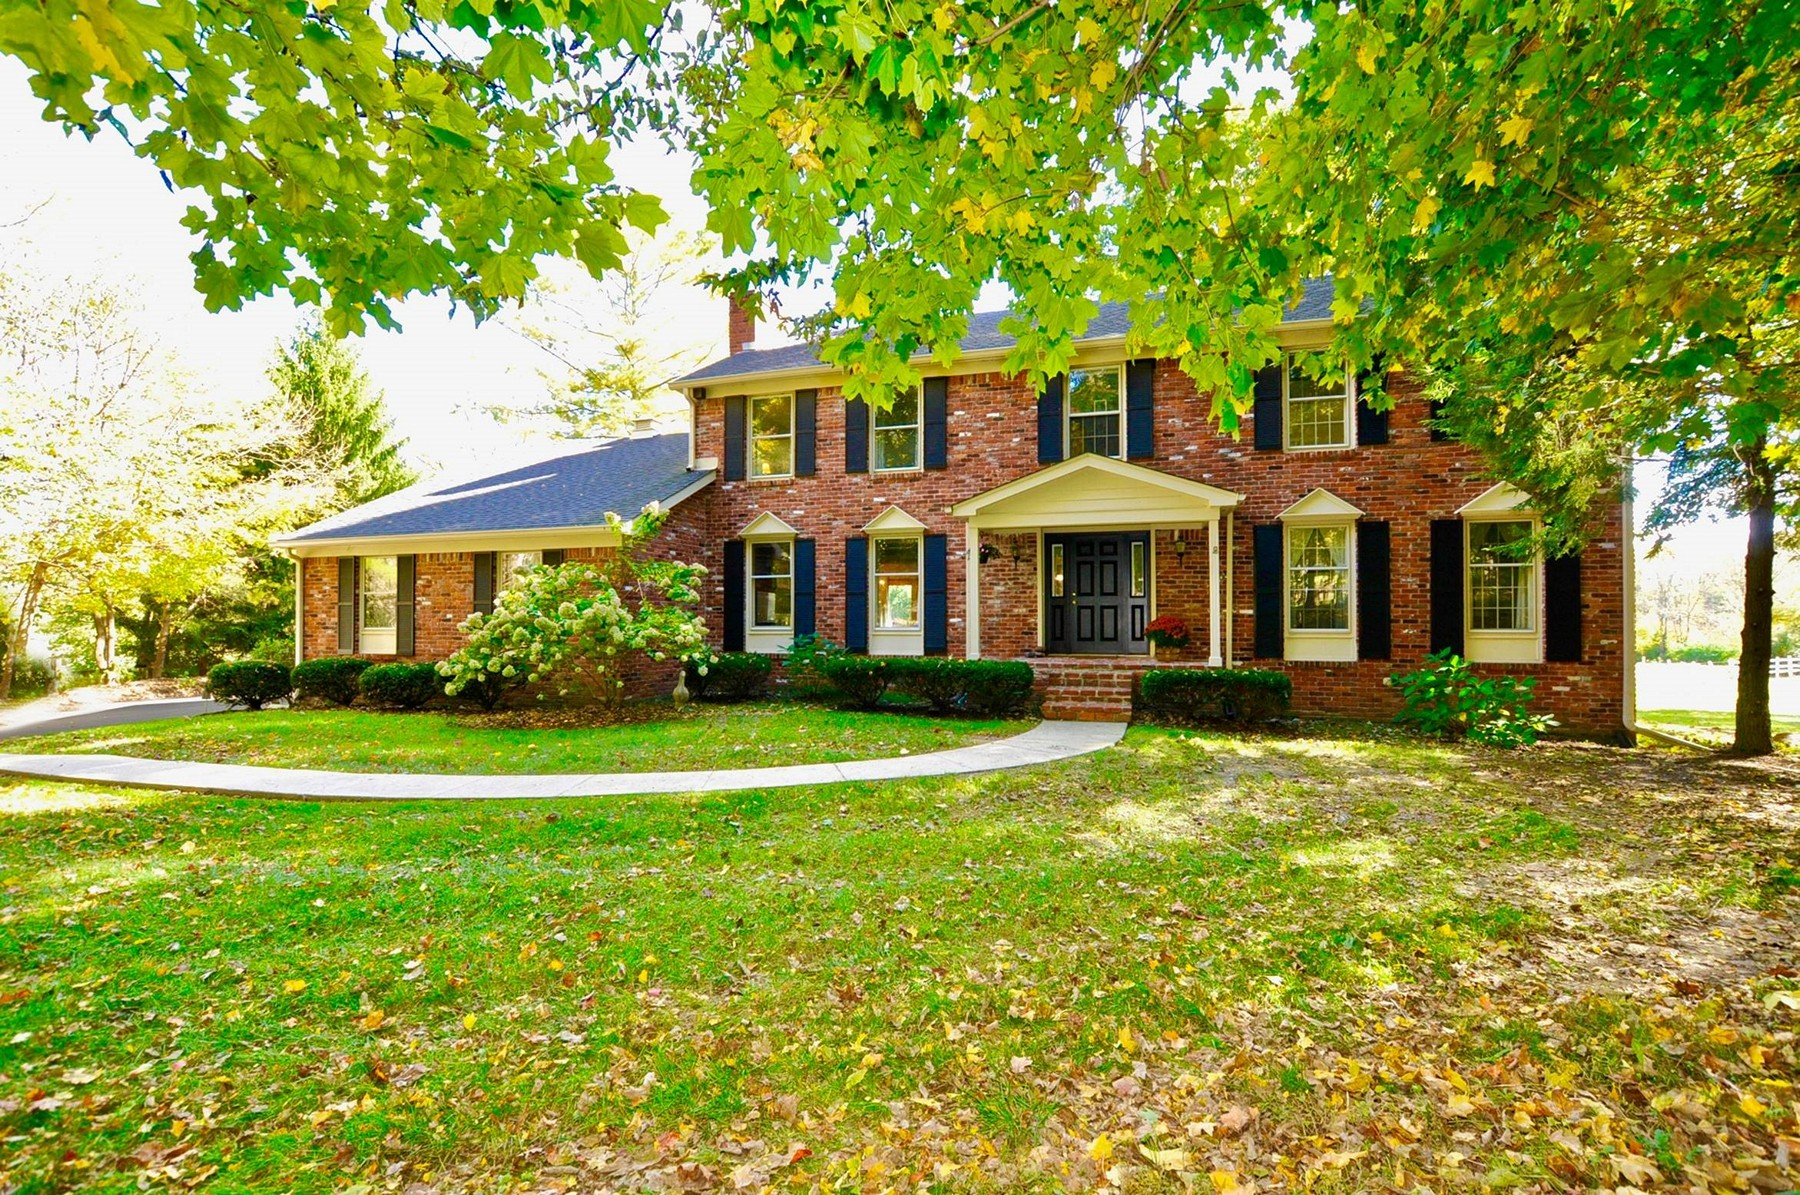 Maison unifamiliale pour l Vente à Beautiful All Brick Colonial Style Home 8549 Silver Ridge Court Indianapolis, Indiana 46278 États-Unis